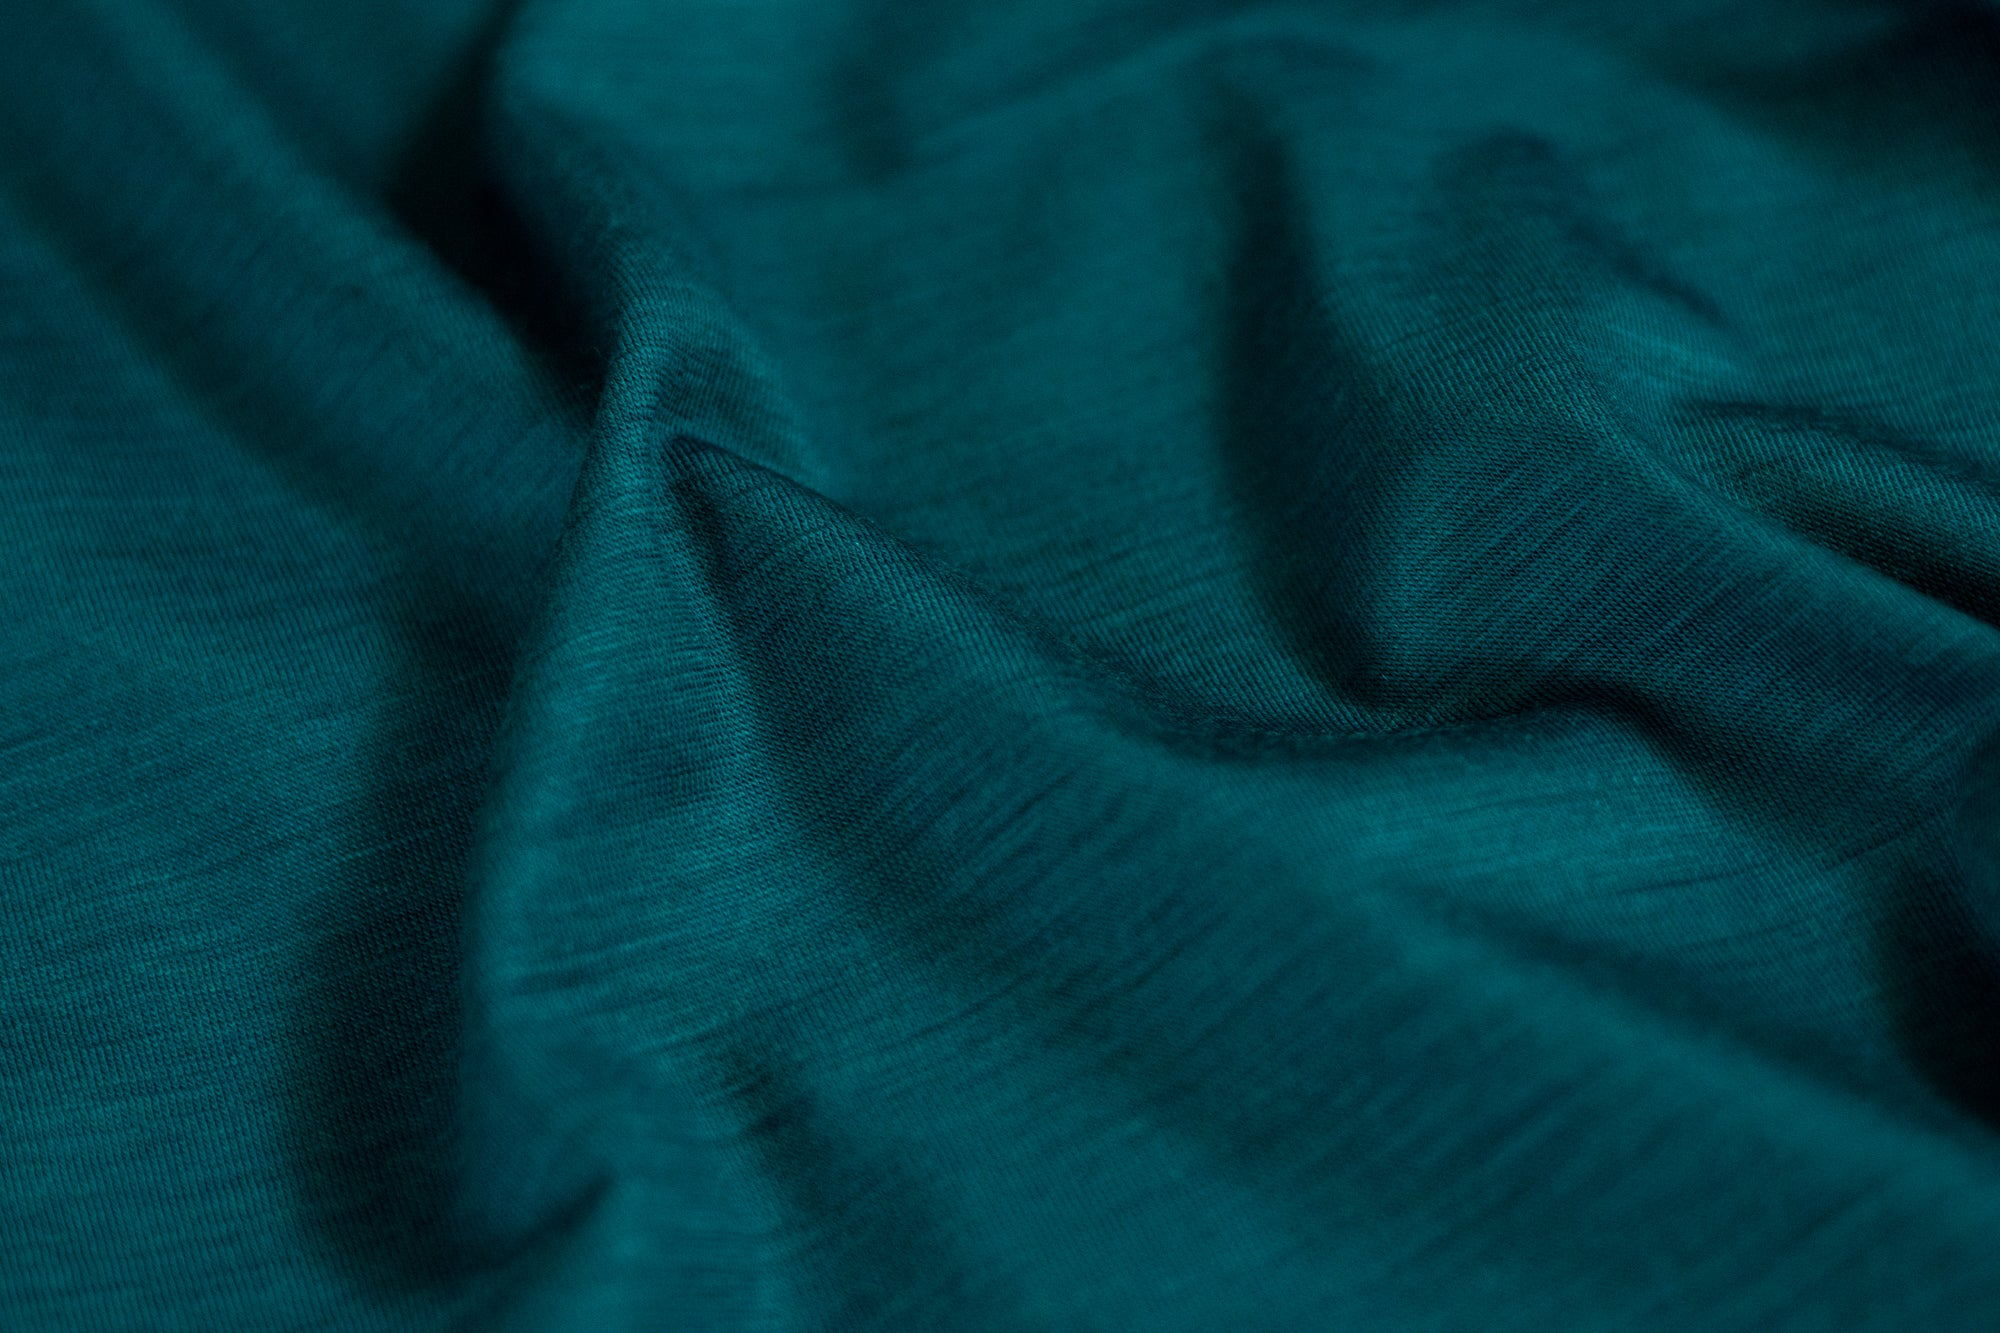 Close up of the 100% Merino Wool Fabric used for the Signature Merino Golf Polo Shirt